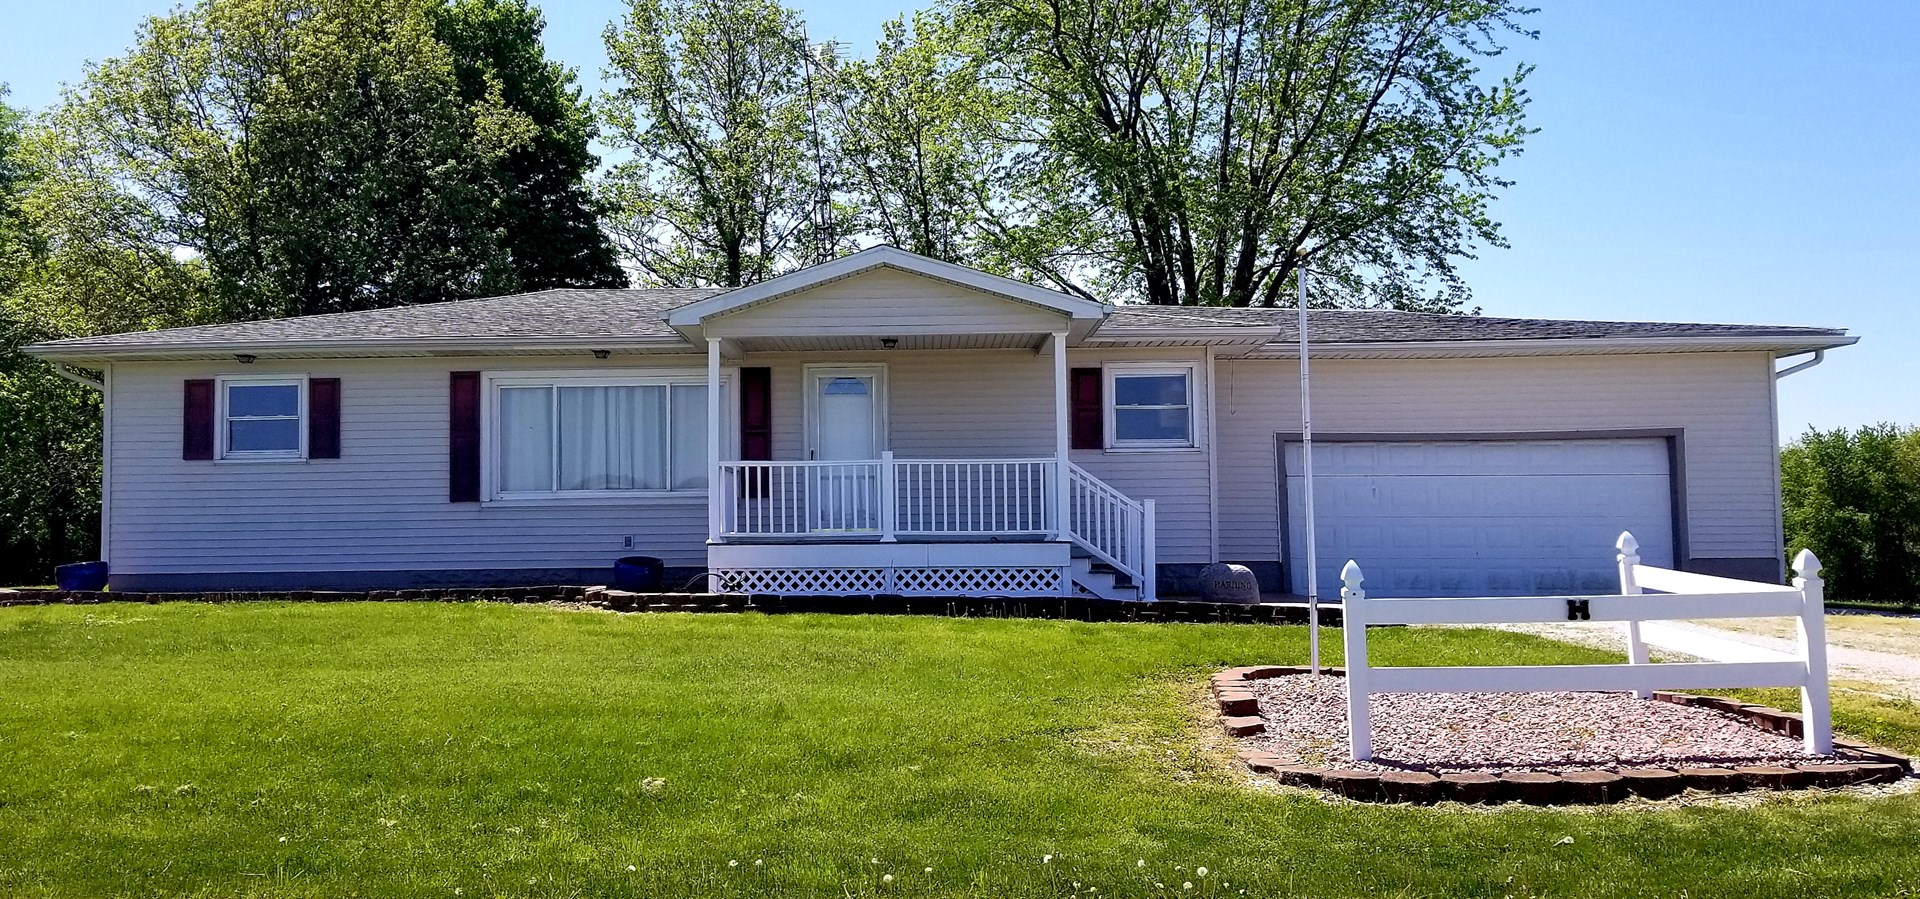 Carlinville Country 3 Bedroom 1 Bath 3-Car Garage 1 Ac Shed